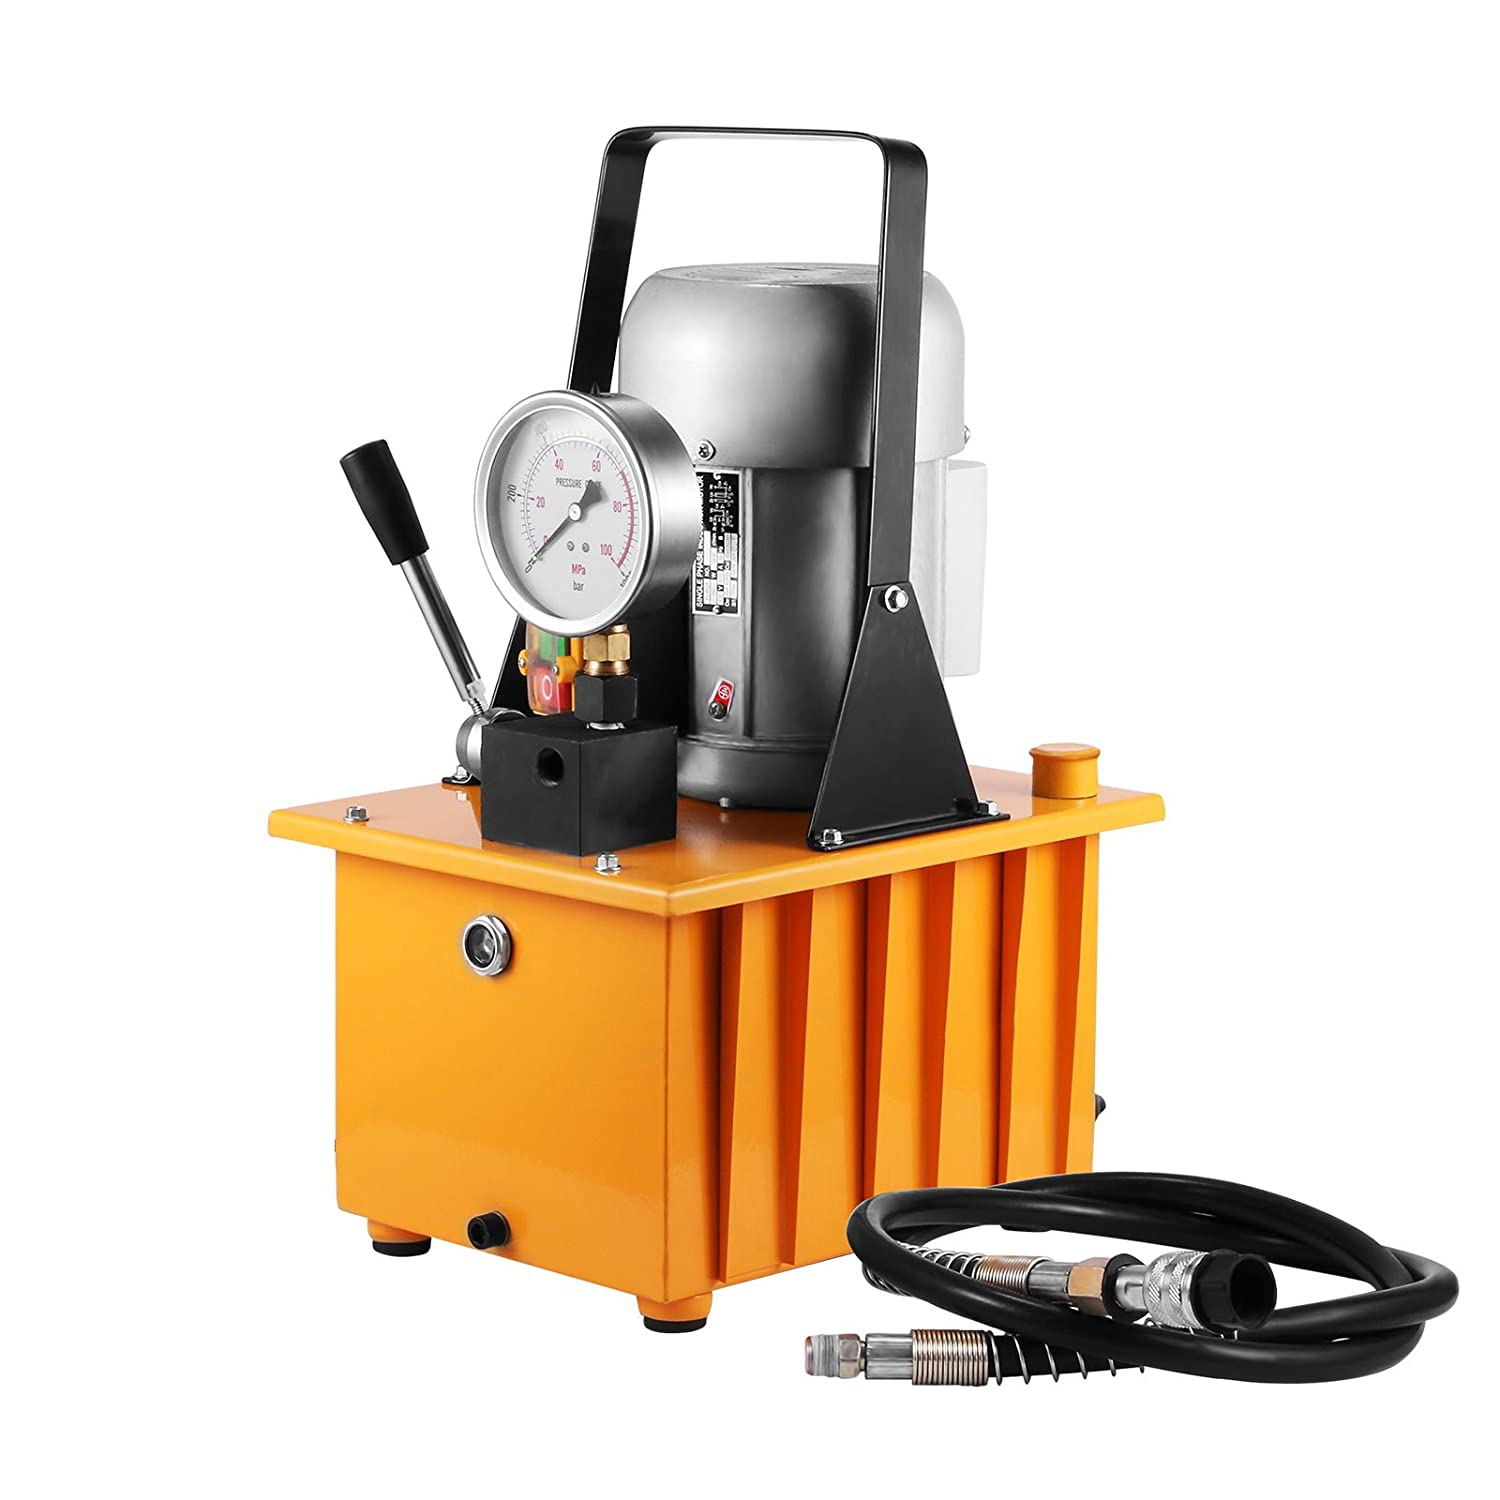 Amazon.com: Happybuy Hydraulic Pump Electric Single Acting Manual Valve  Hydraulic Pump 10000 PSI Electric Hydraulic Power Unit for Home and  Commercial Using ...